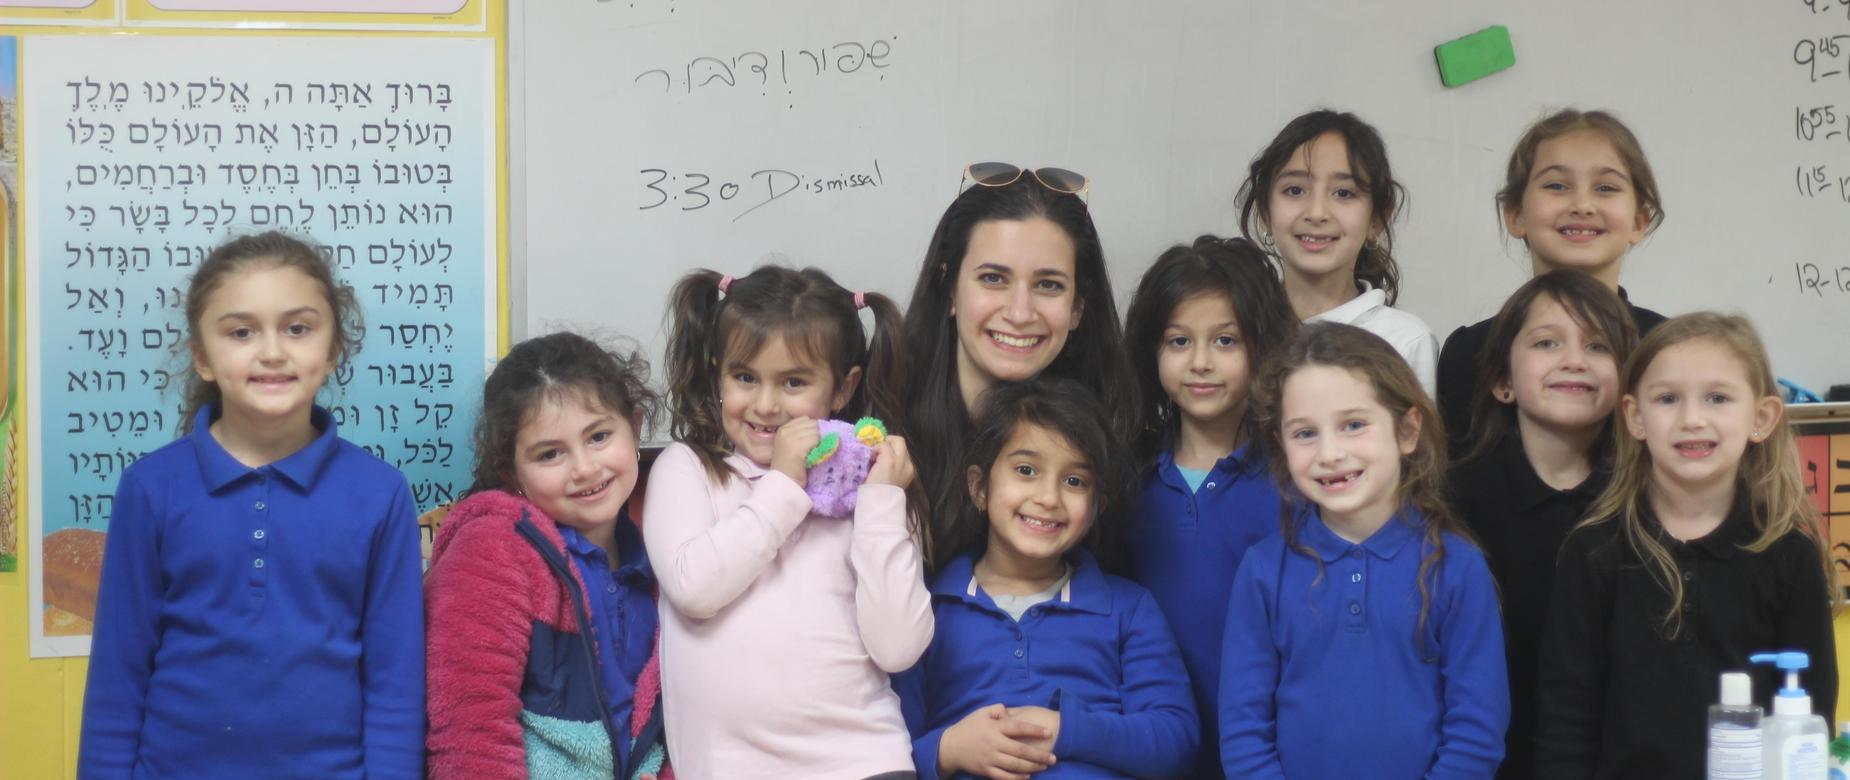 Teacher posed with students